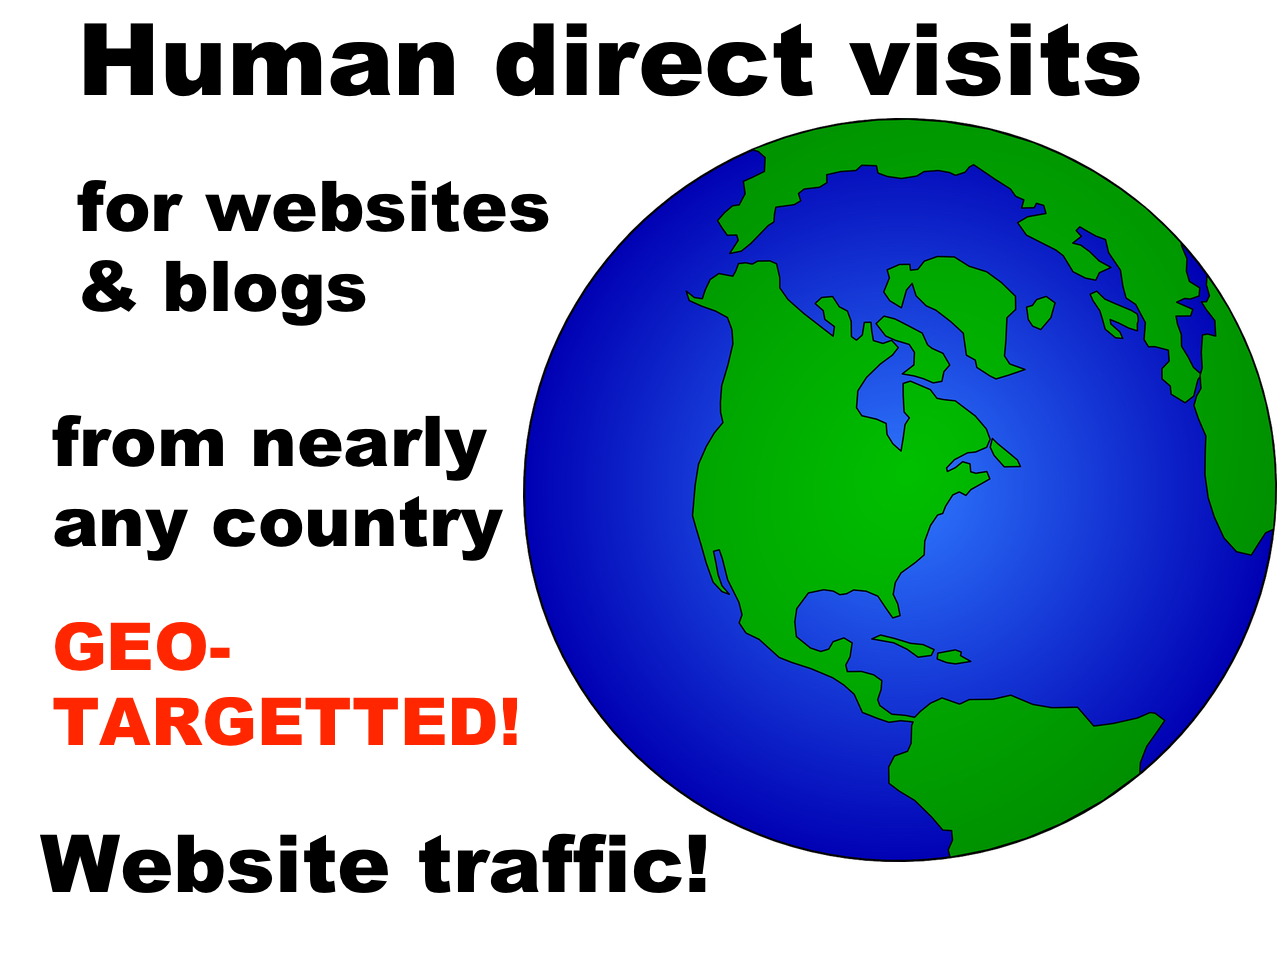 Geo-targeted traffic, visits from nearly any country